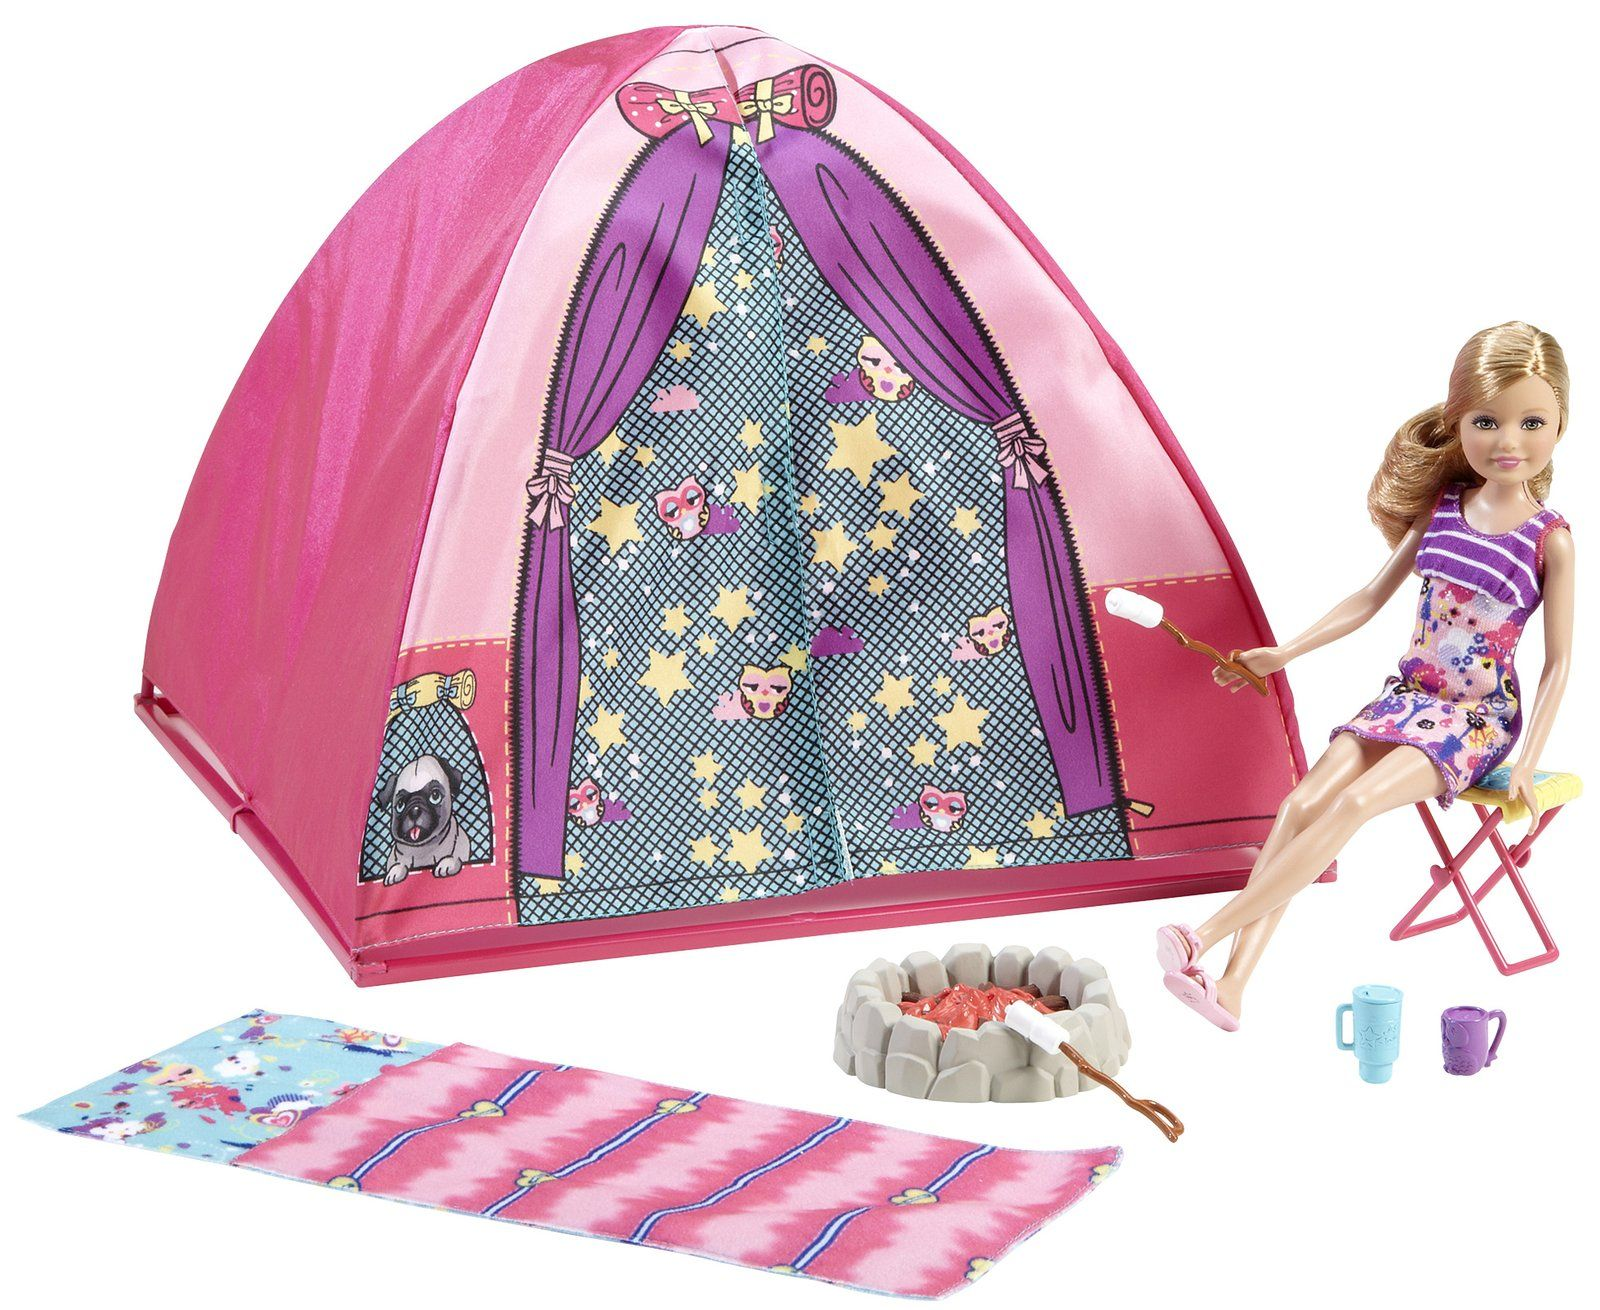 Barbie Sisters Tent and Stacie Doll Playset - Free Shipping  sc 1 st  Pinterest & Barbie Sisters Tent and Stacie Doll Playset - Free Shipping ...